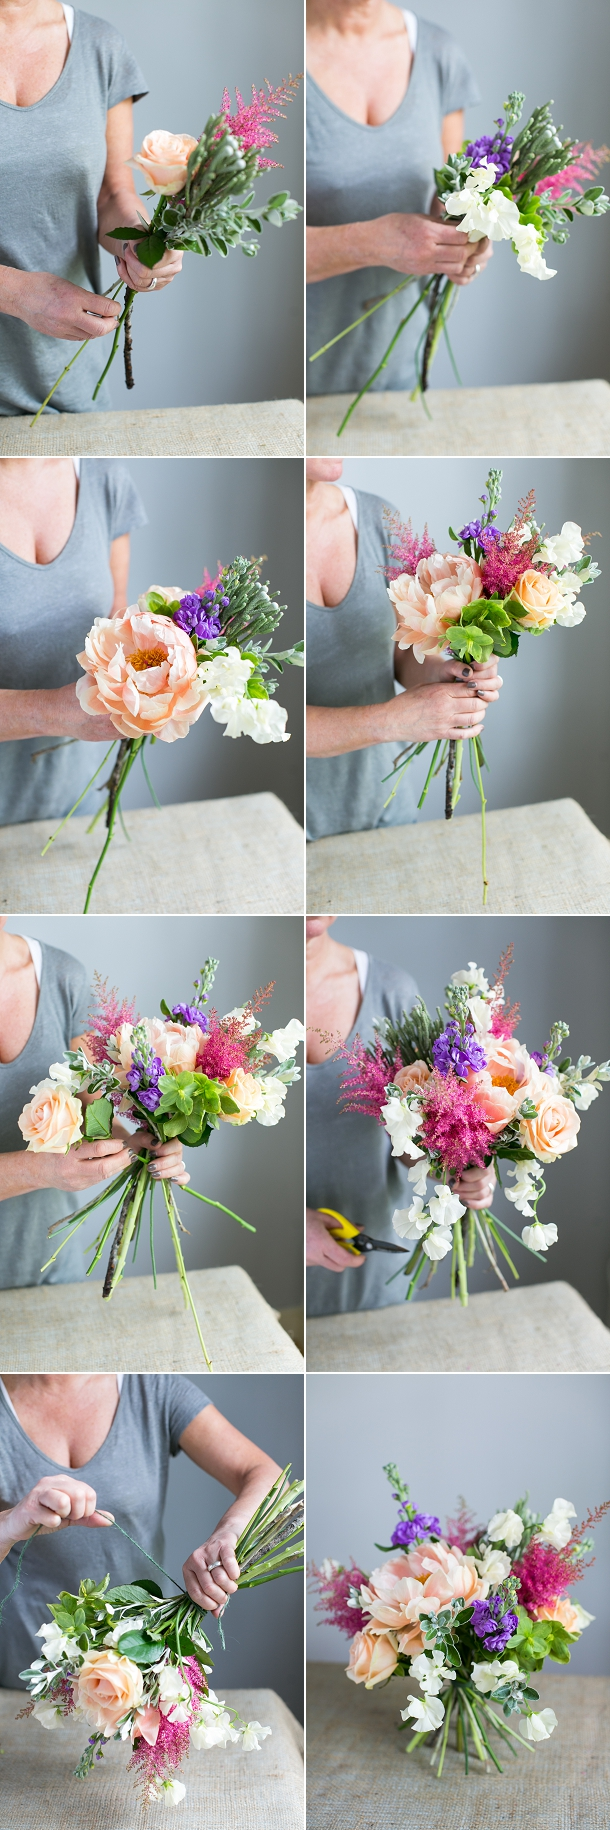 making wedding bouquets with artificial flowers diy bouquet tutorial with peonies 5681